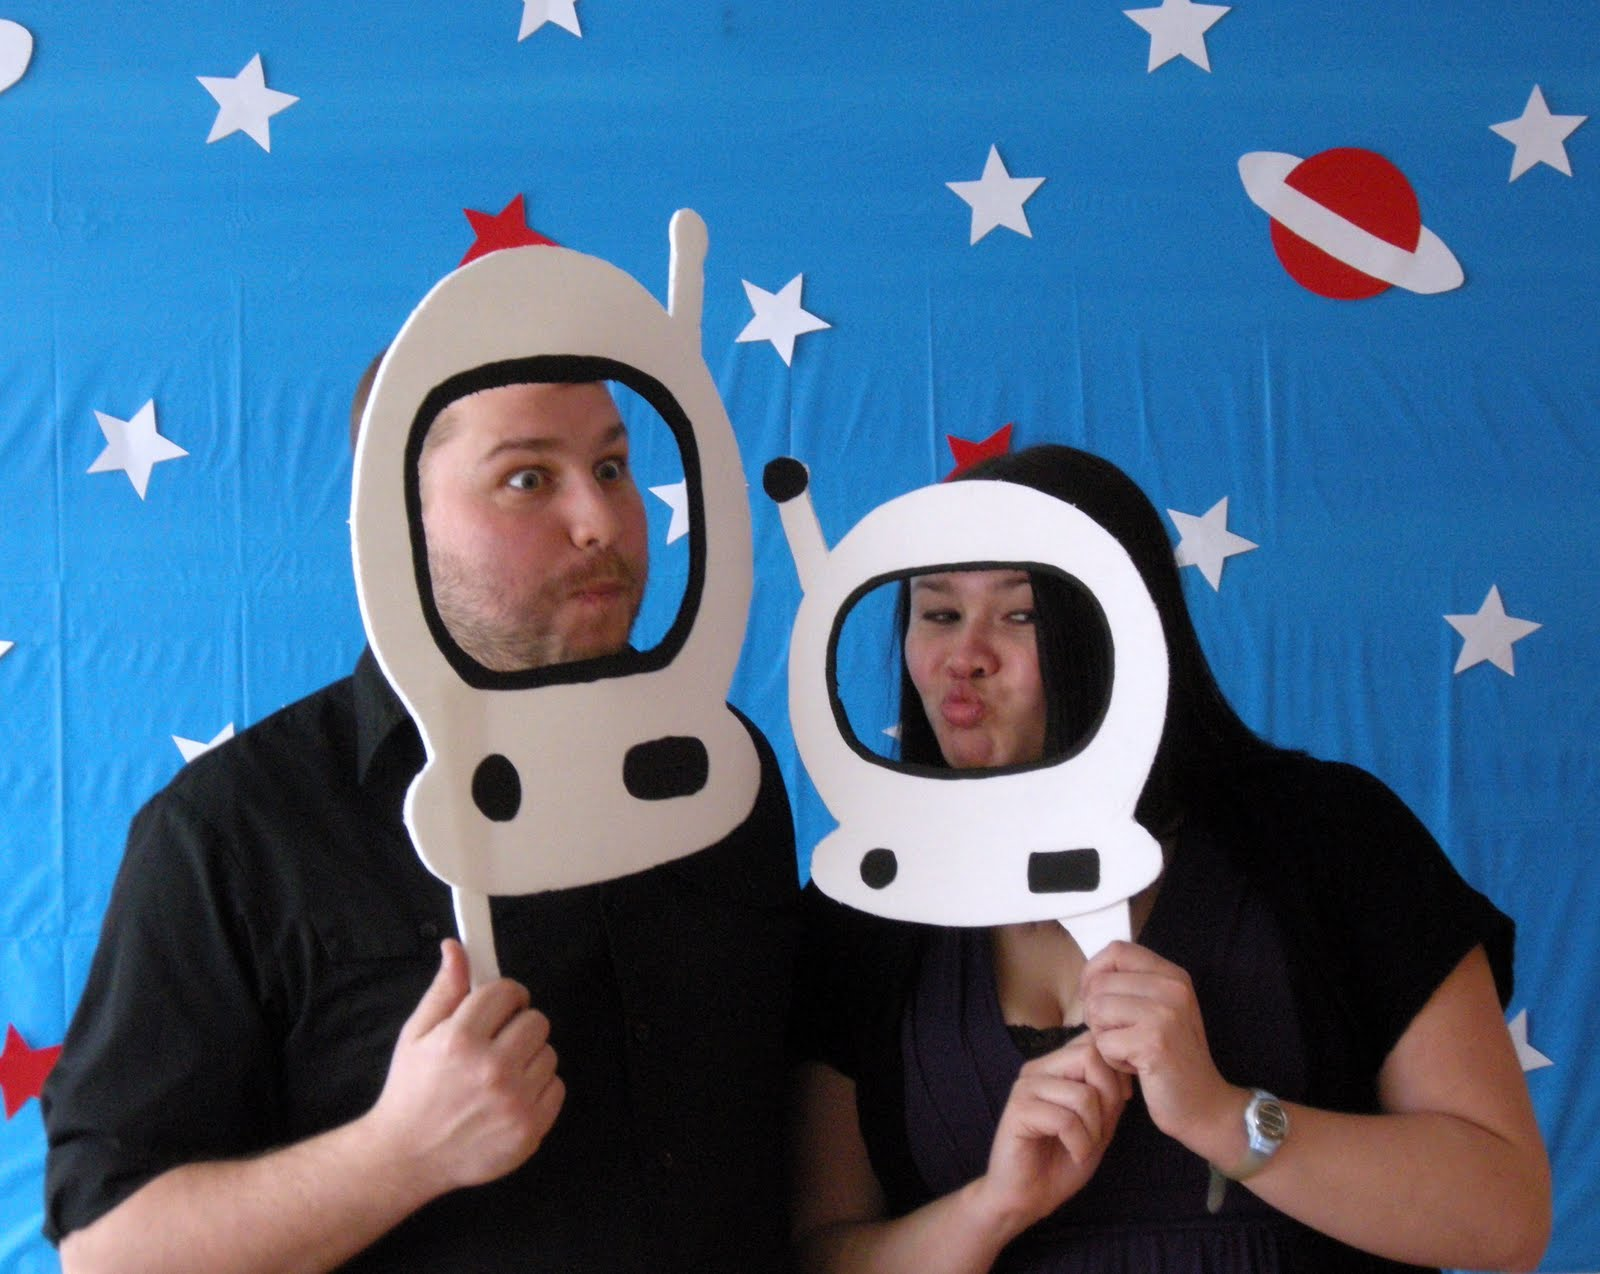 Astronaut Helmet Craft for.  sc 1 st  Pics about space & DIY Paper Plate Astronaut Helmet (page 3) - Pics about space